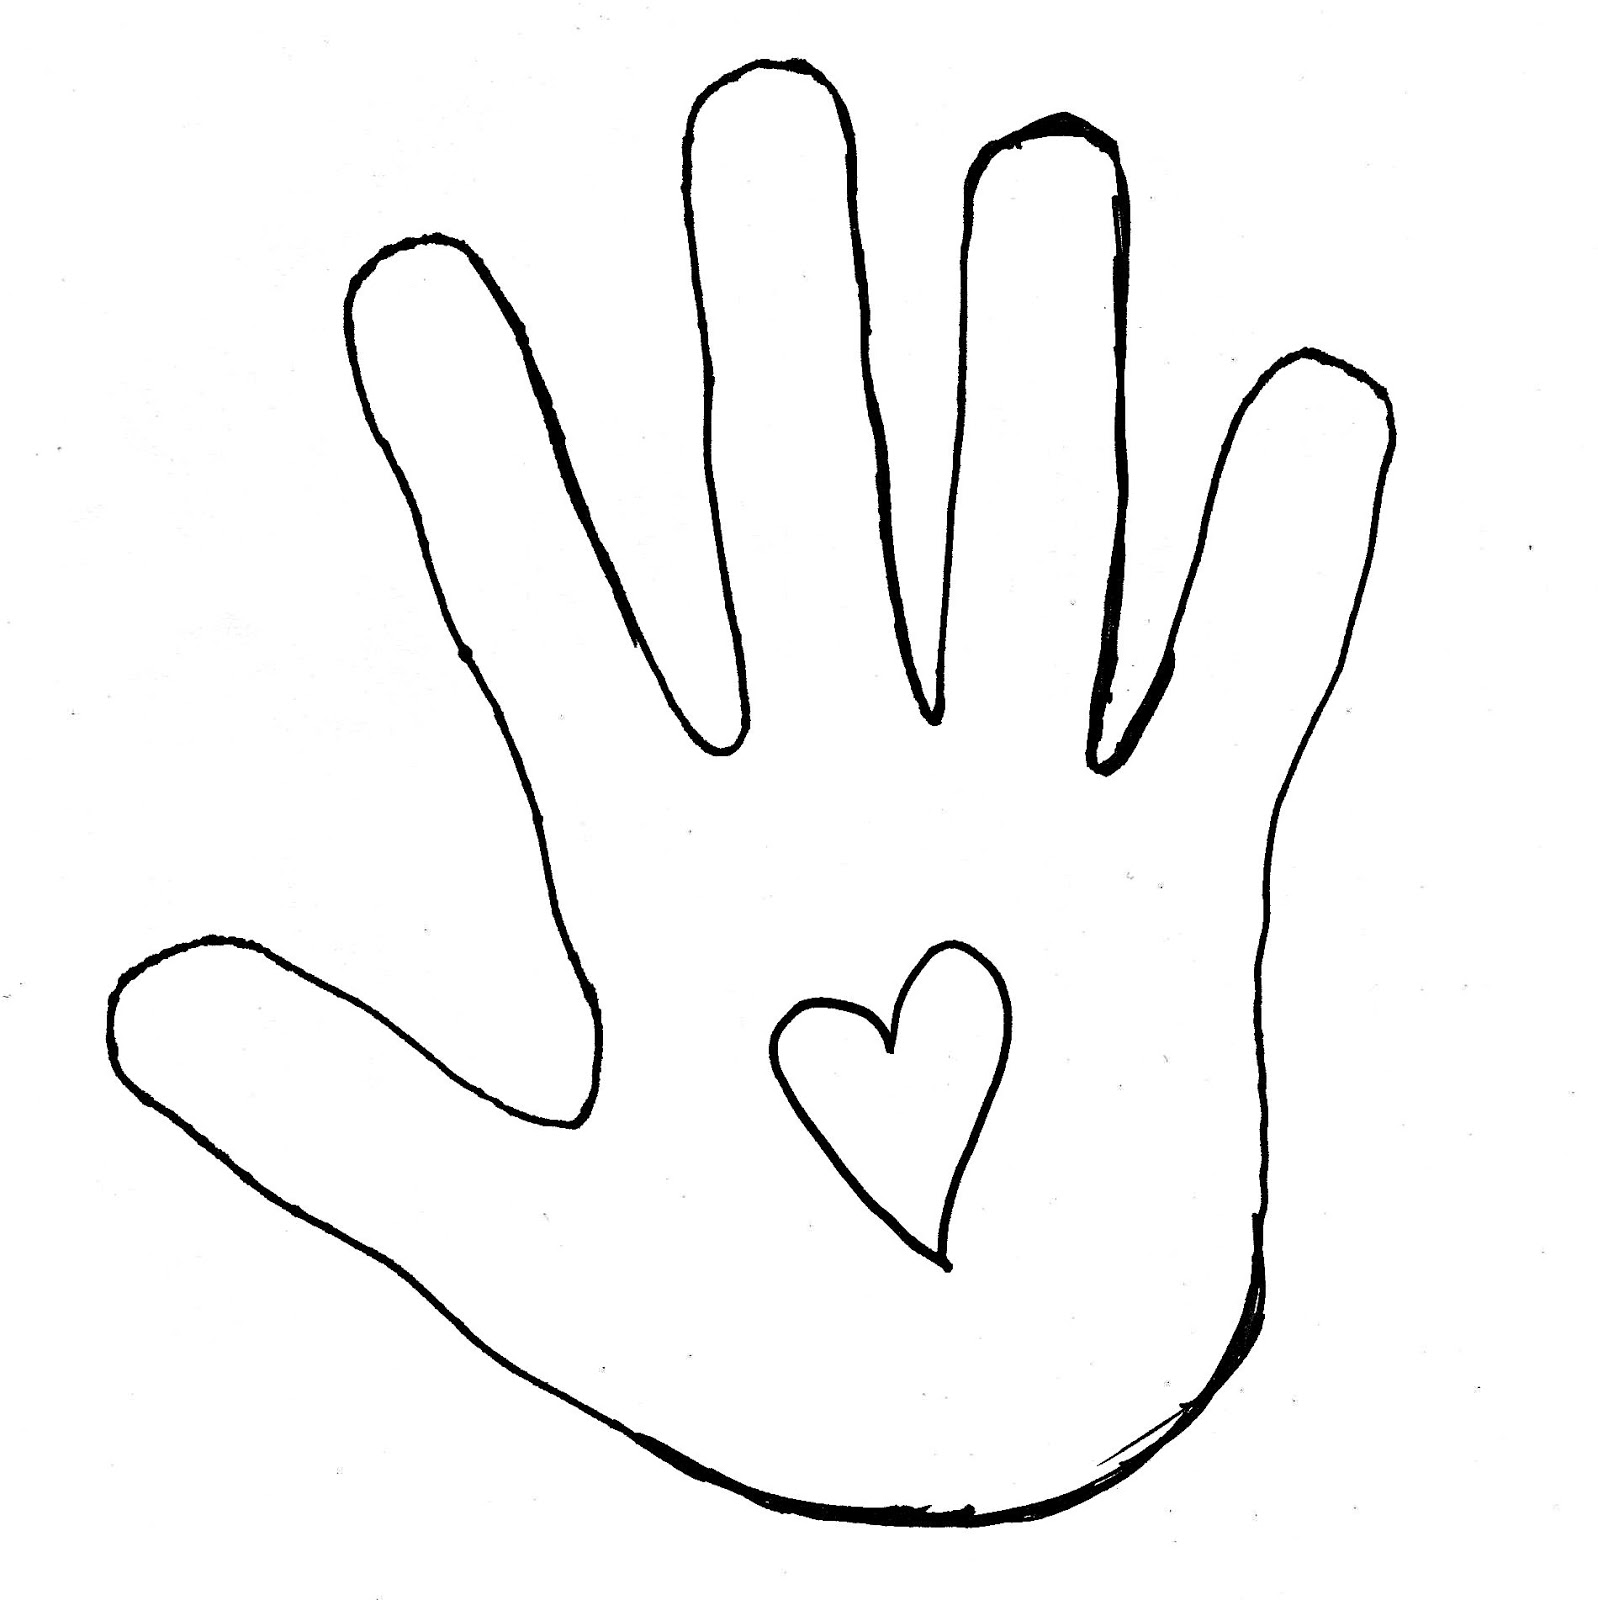 kids handprint coloring page clipart best hand print clip art borders handprint clipart